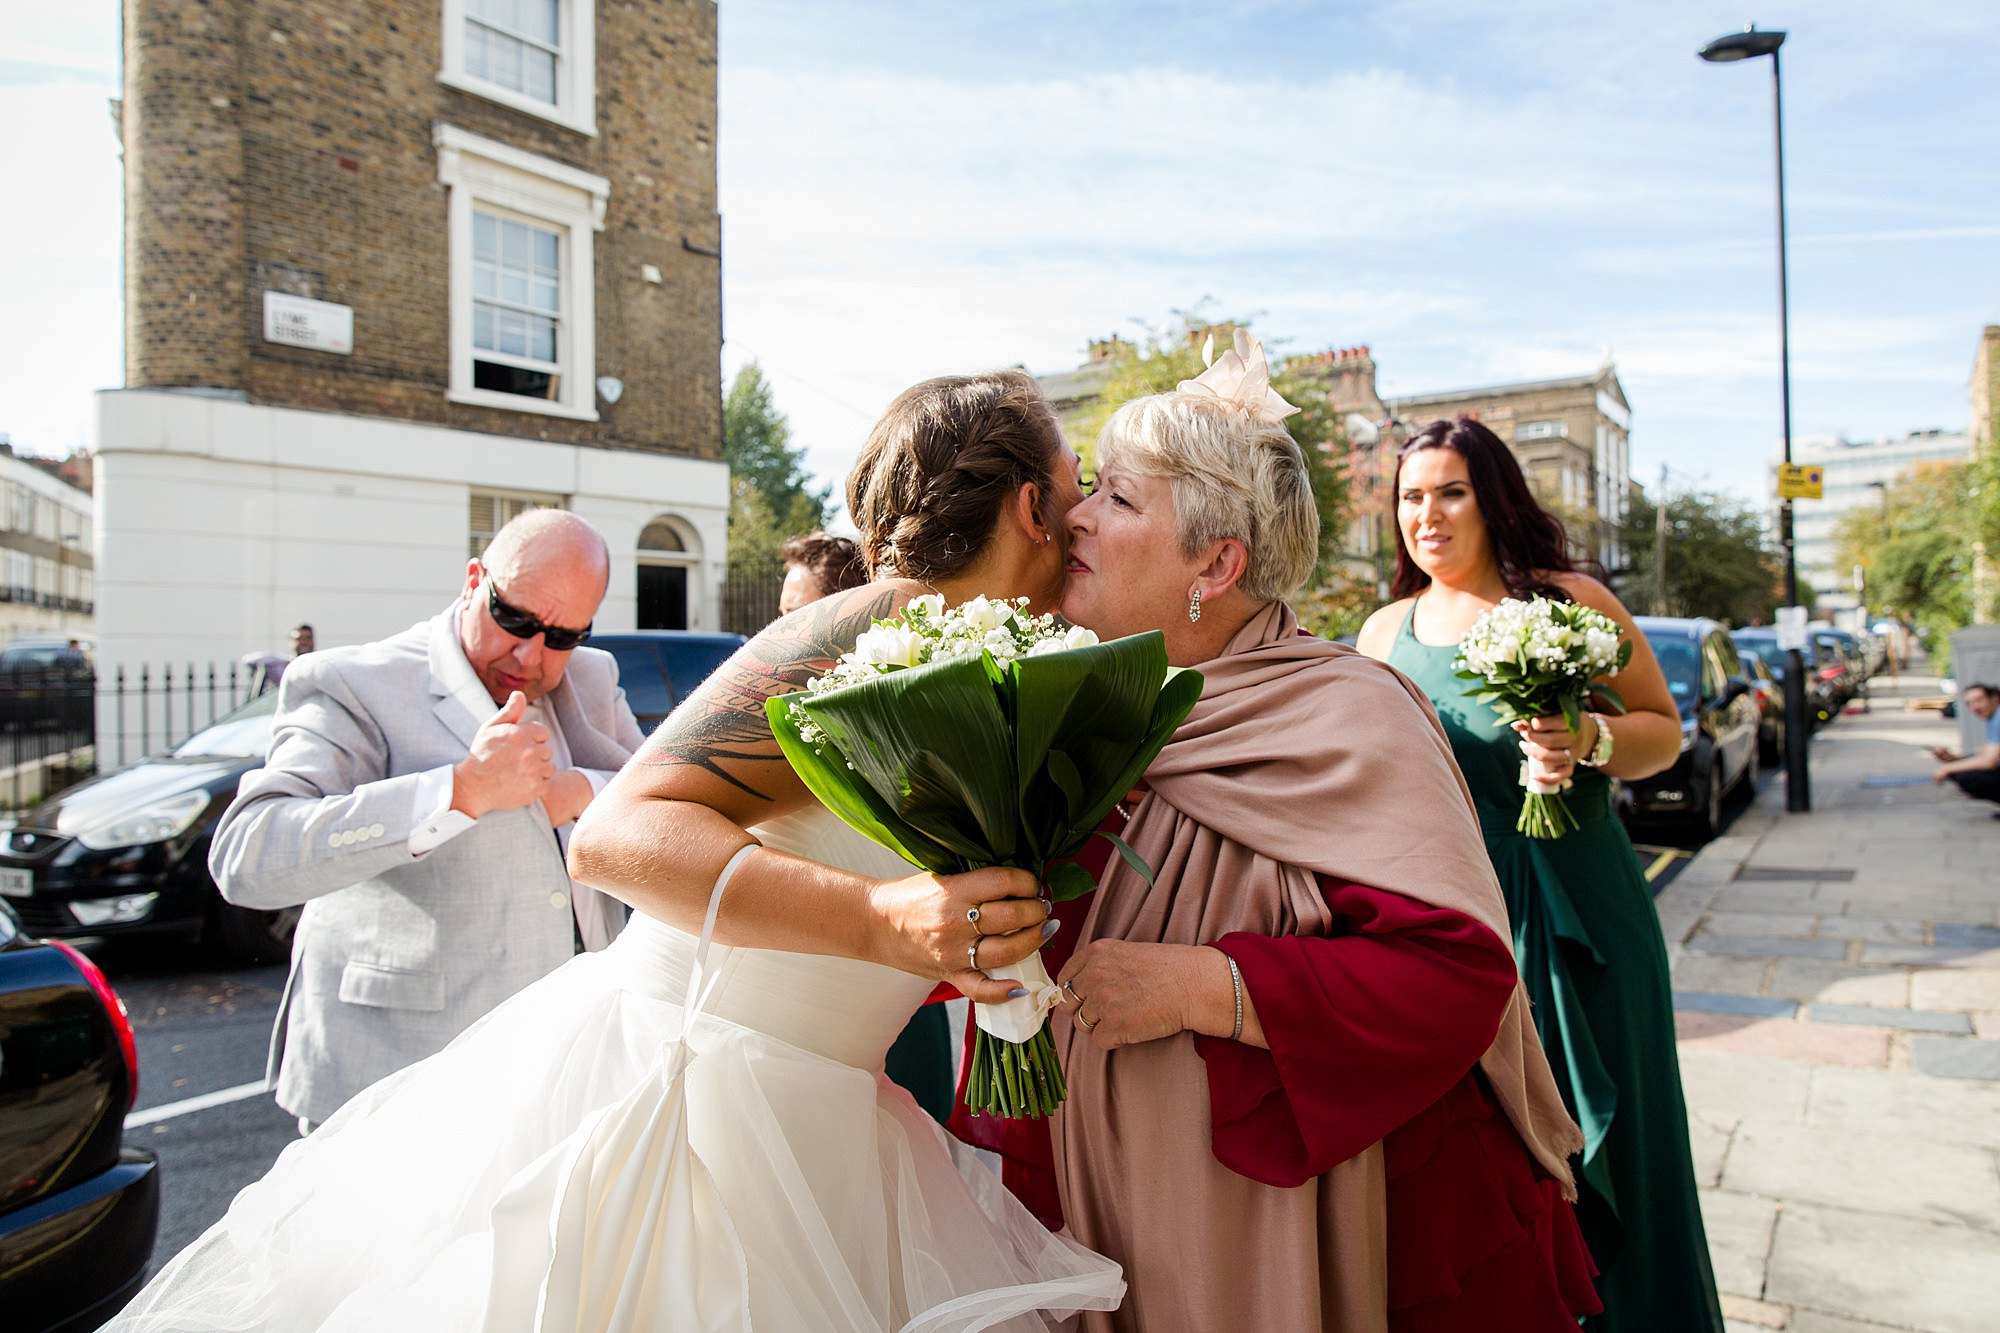 Prince albert camden wedding bride greets guest